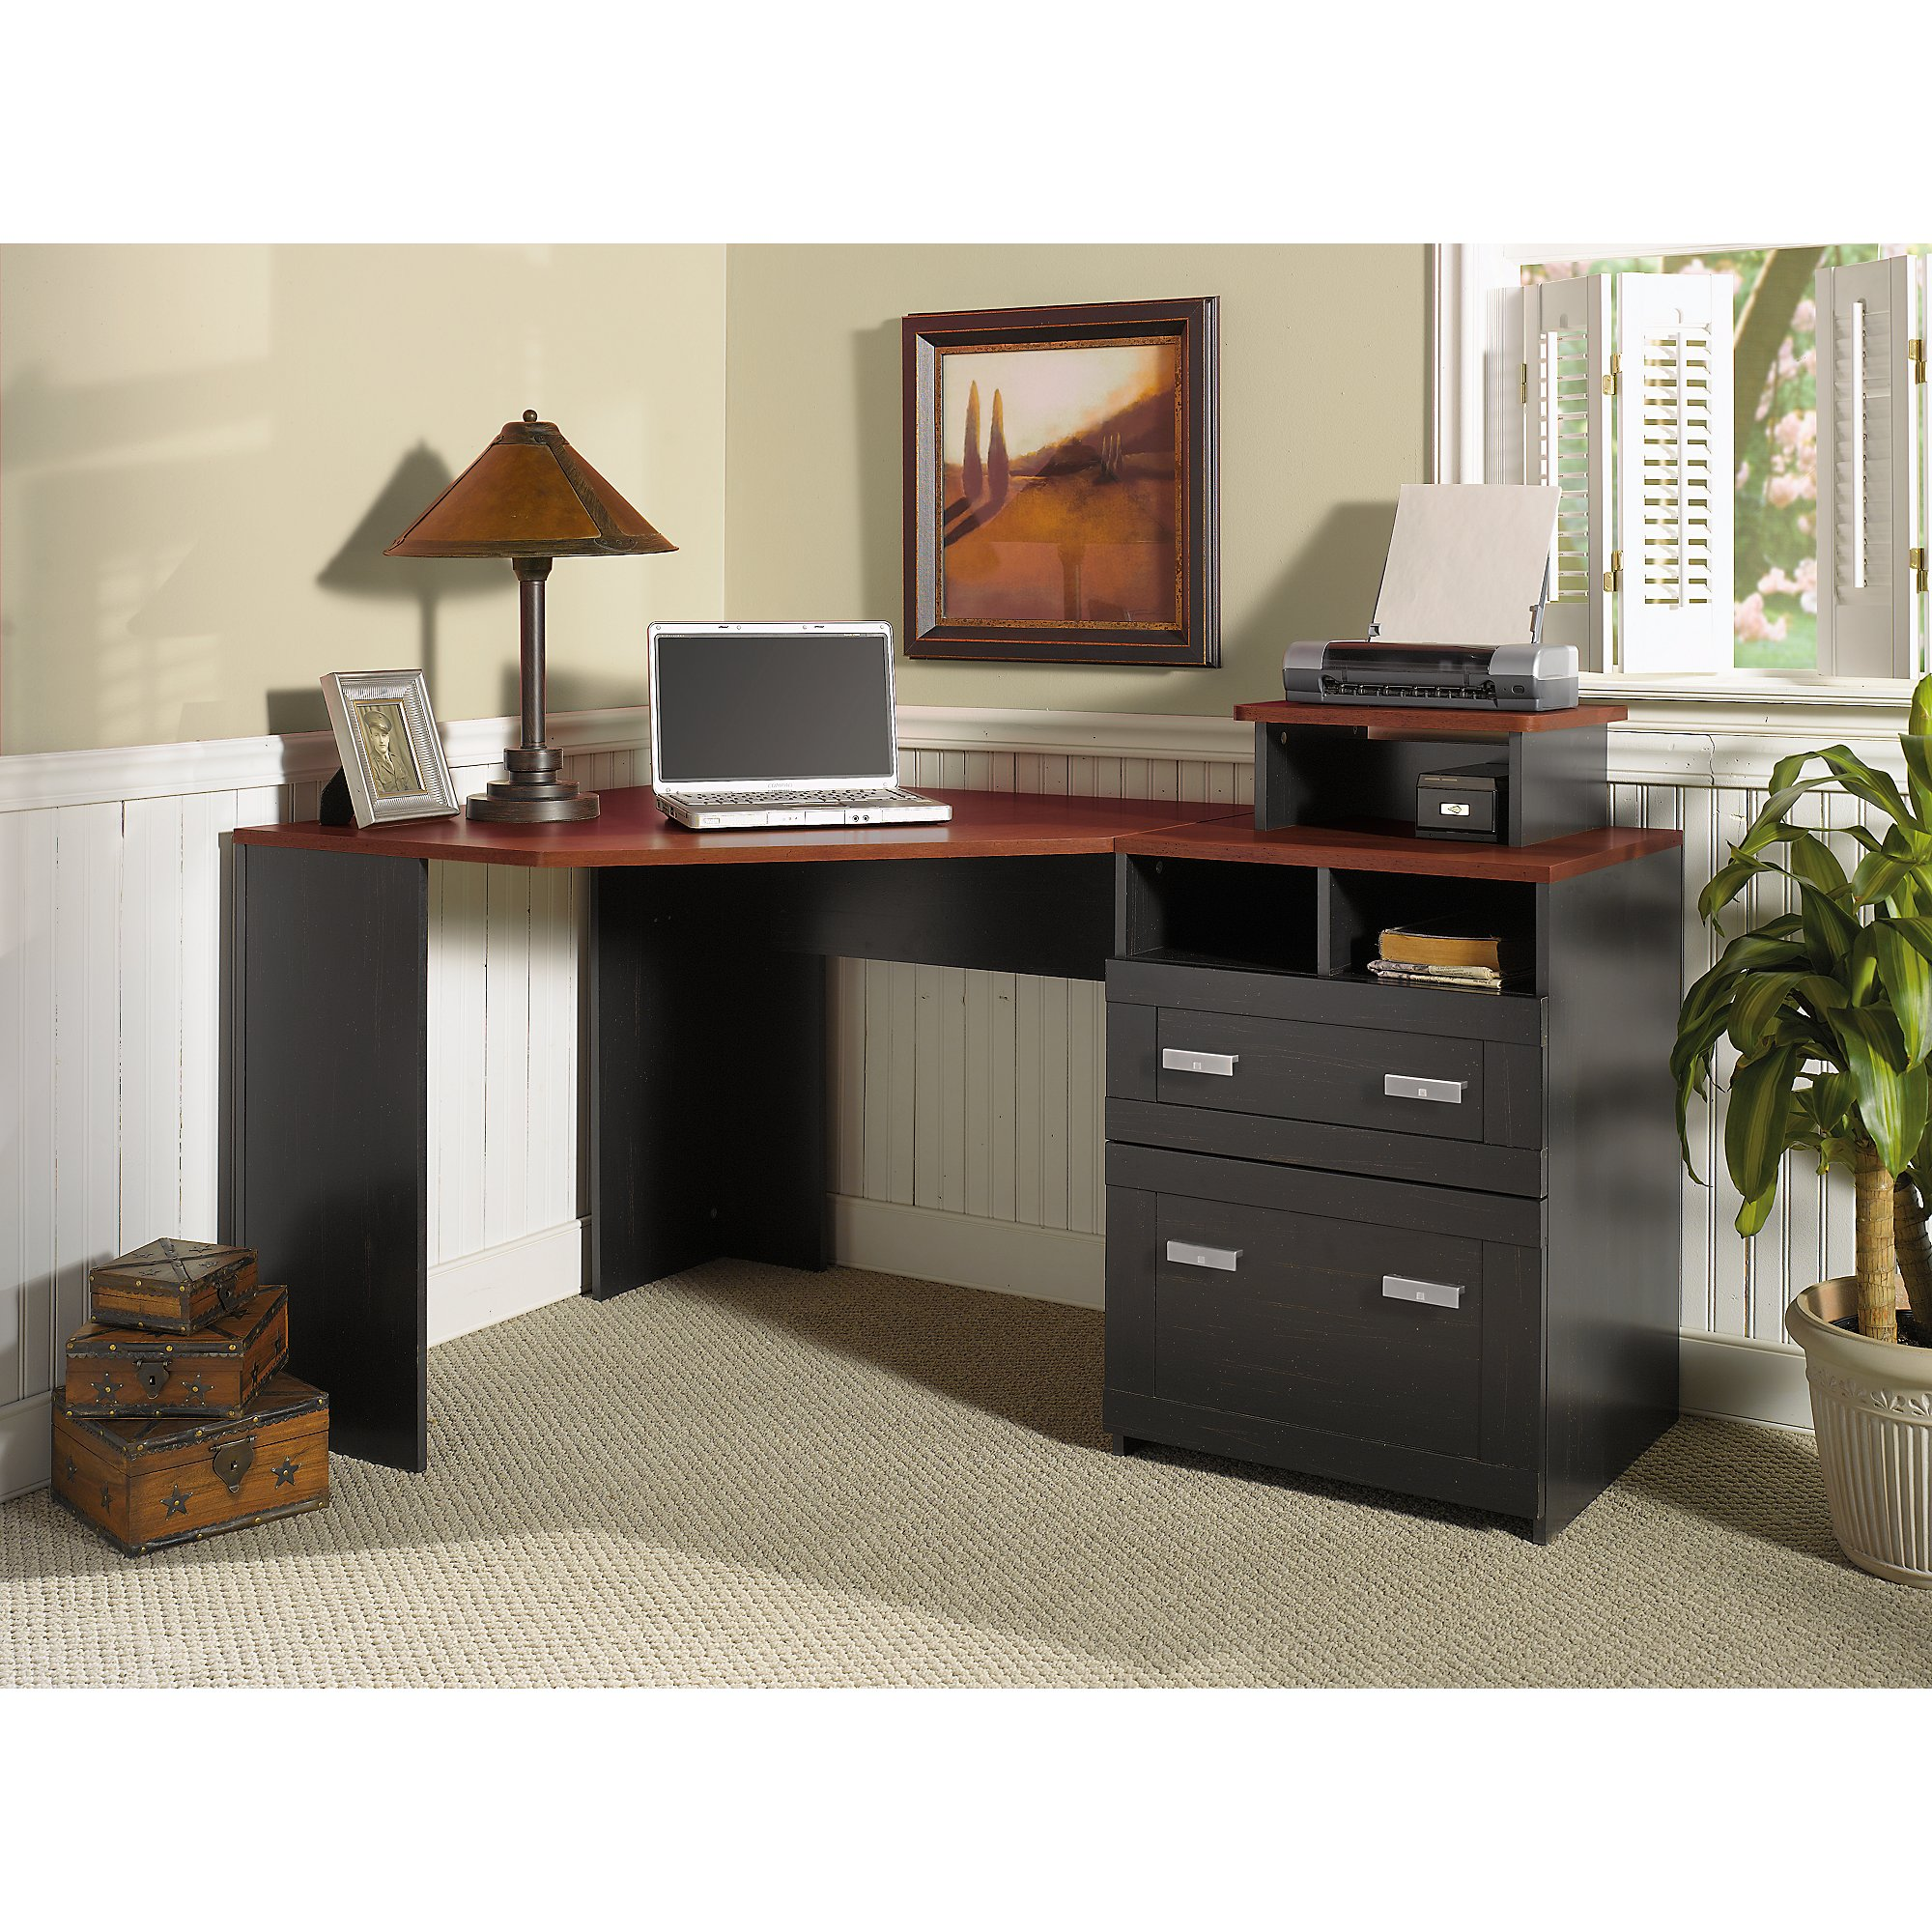 Lovely Bush Furniture Wheaton Reversible Corner Desk, Multiple Colors